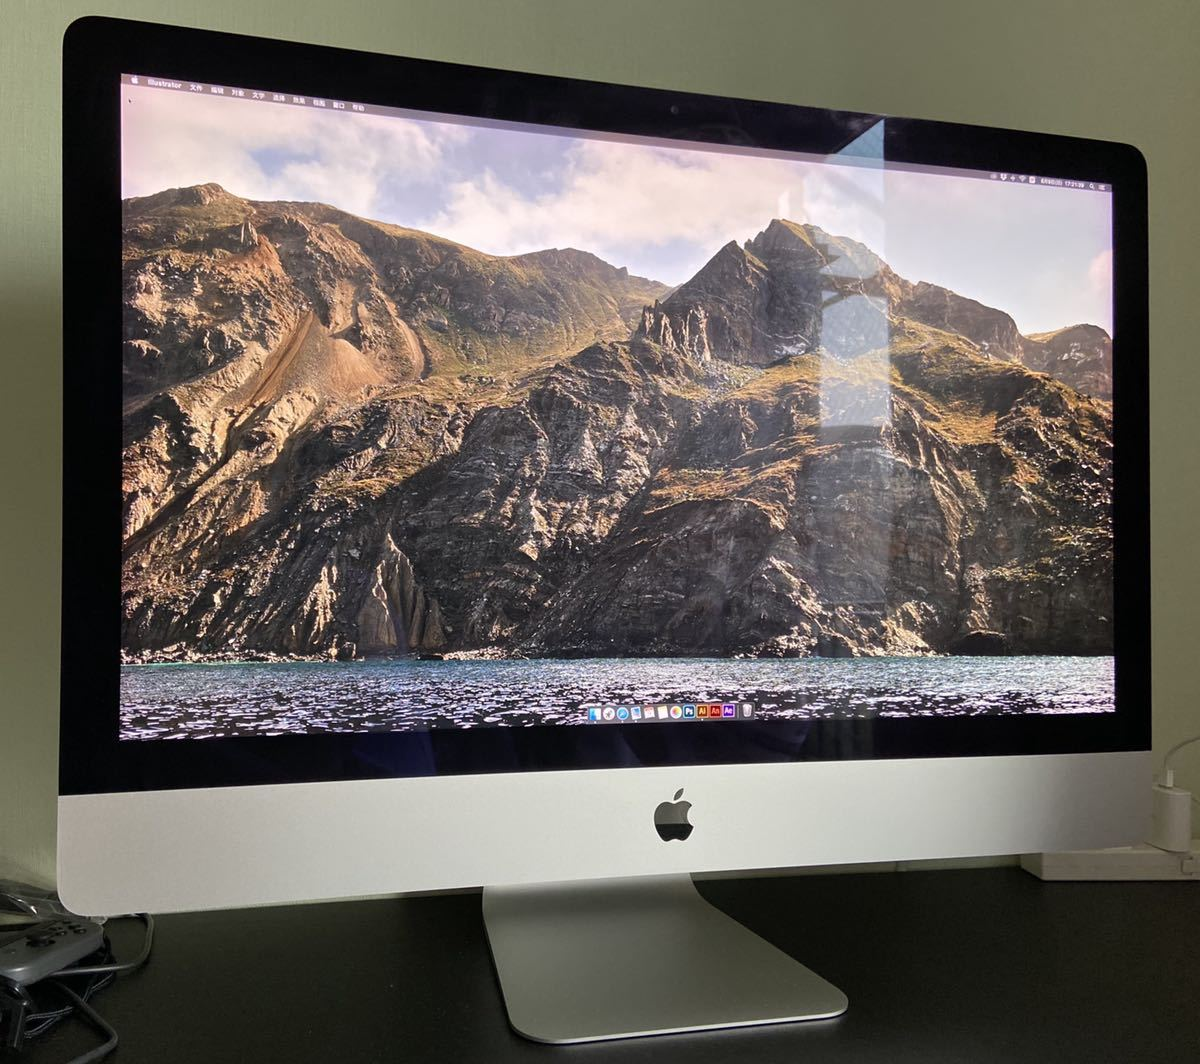 【美品】Apple iMac Retina 5K 27-inch Late 2015/macOS Catalina 10.15.6 /Intel Core i5 3.3 GHz/RAM:24GB/HDD:2TB/動作品/本体のみ